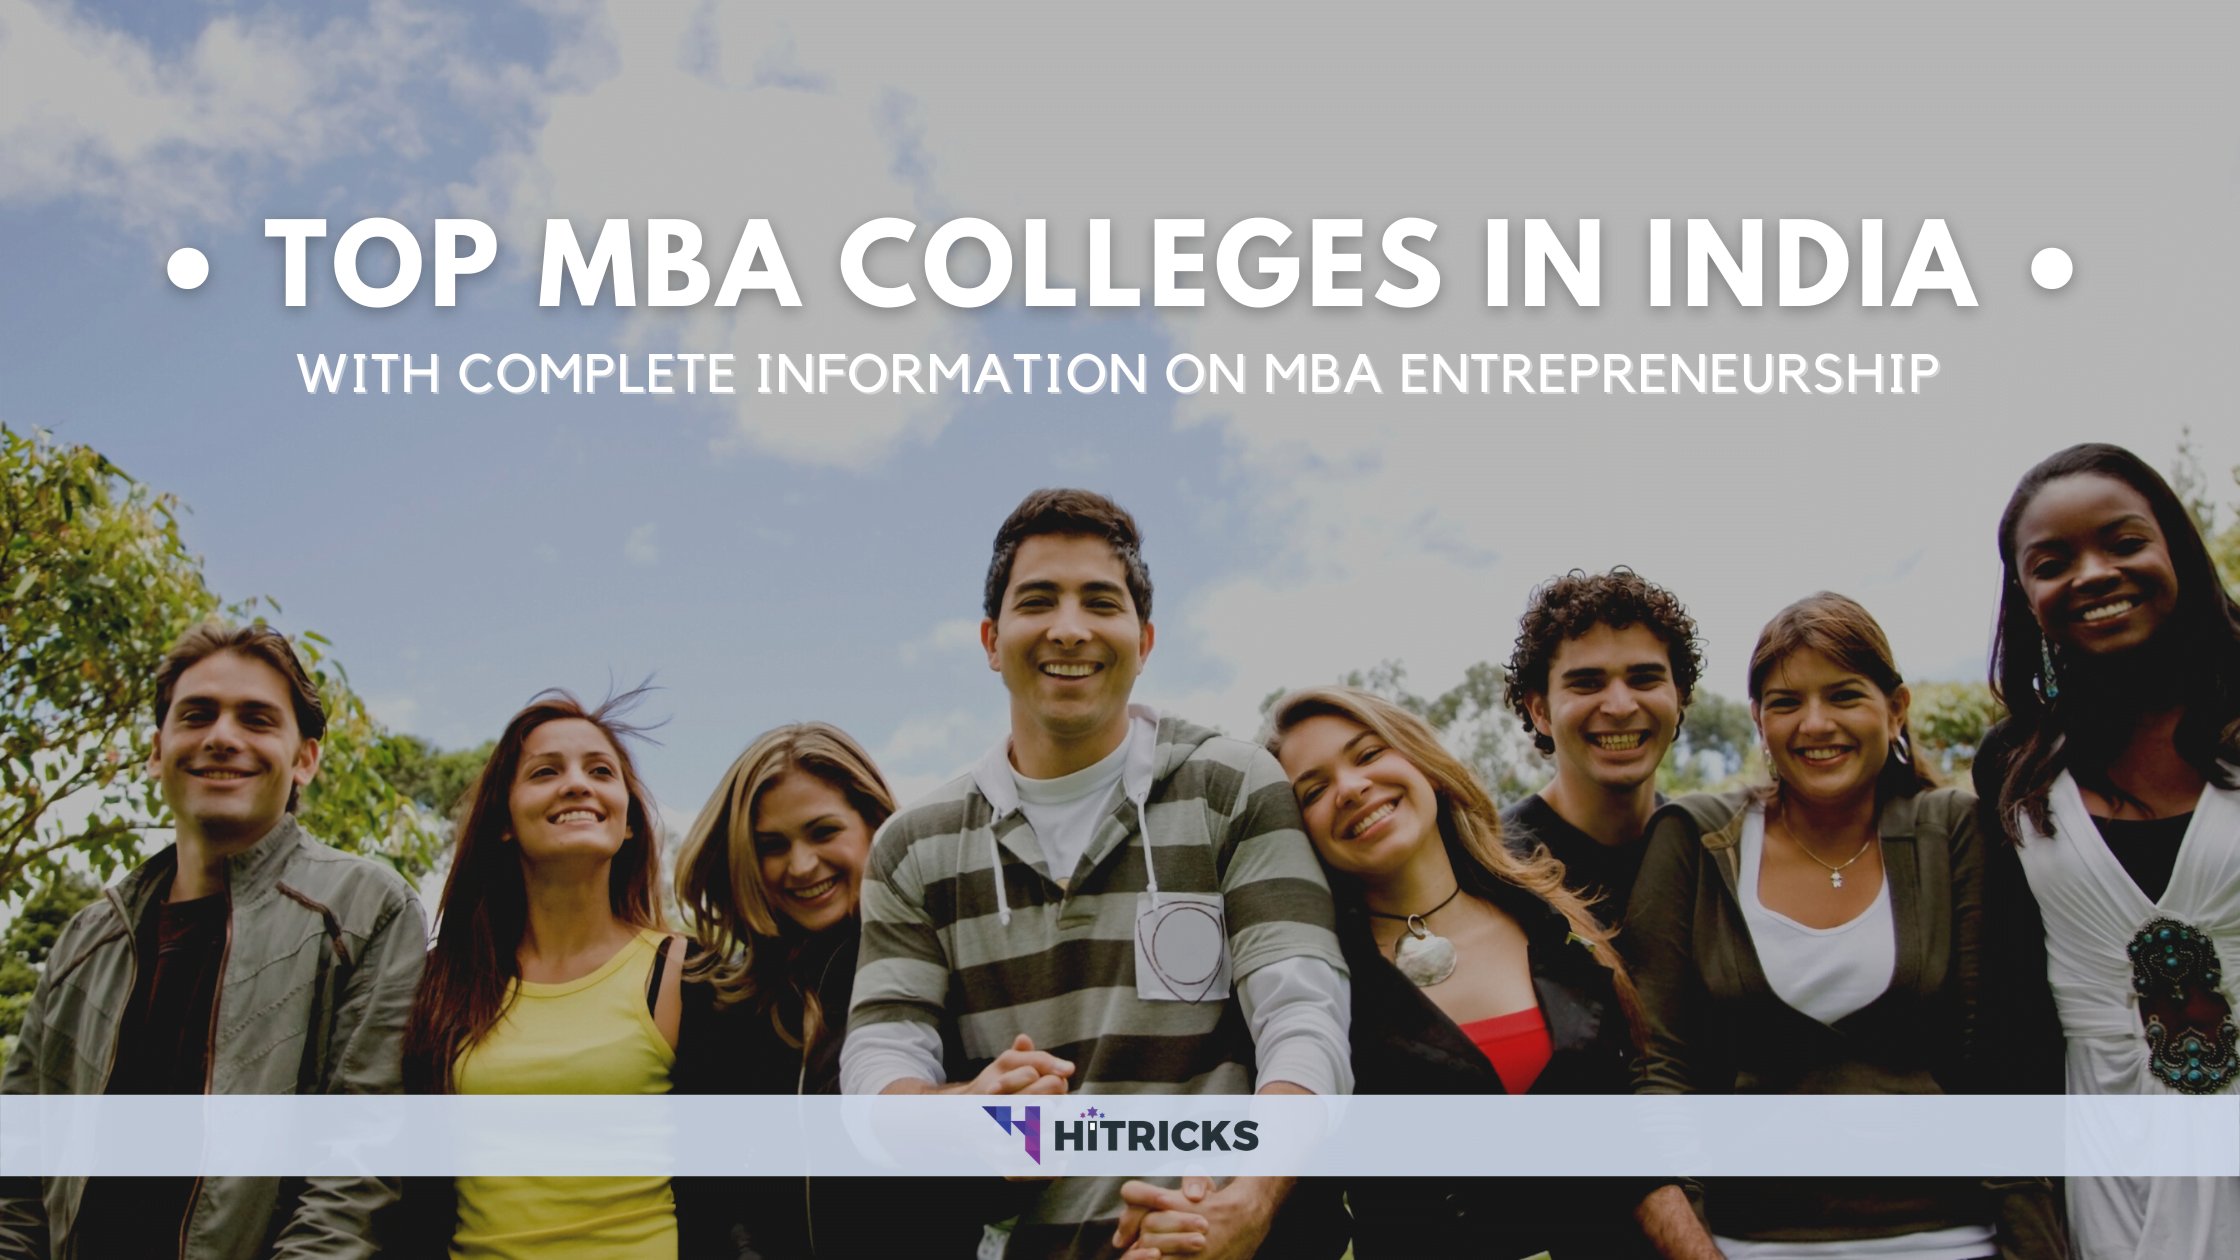 Planning for MBA (Entrepreneurship)? Check these Top MBA Colleges in India